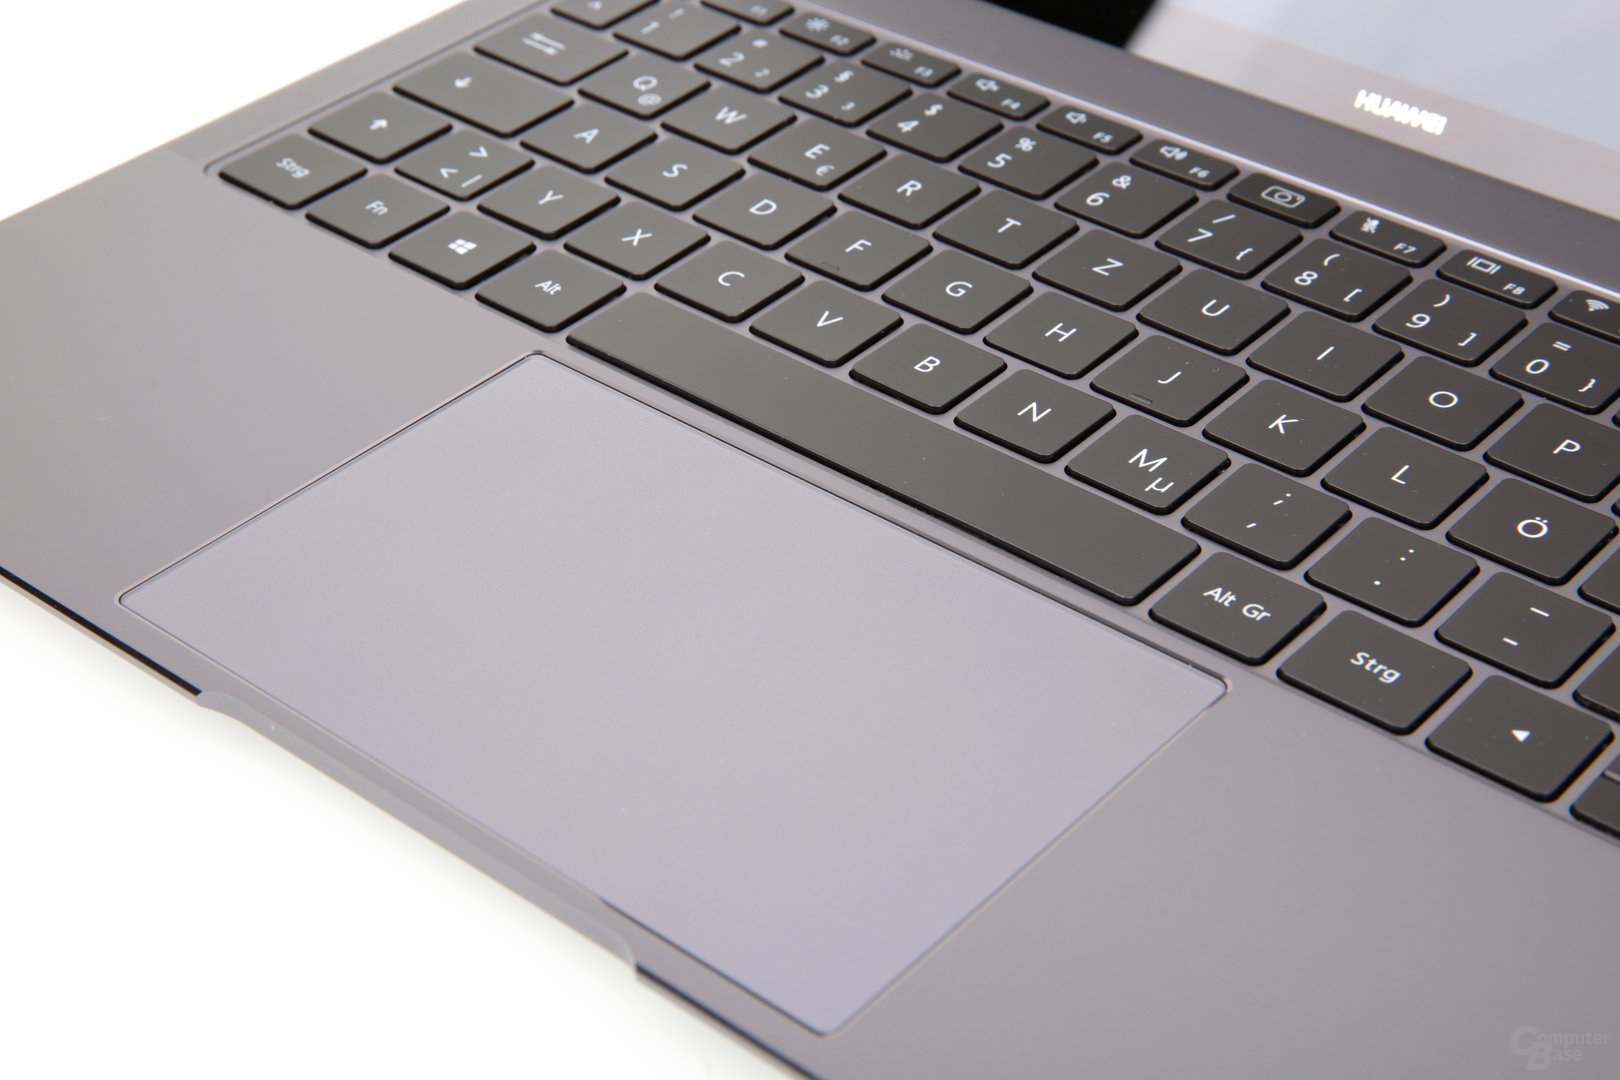 Sehr großes Glas-Touchpad